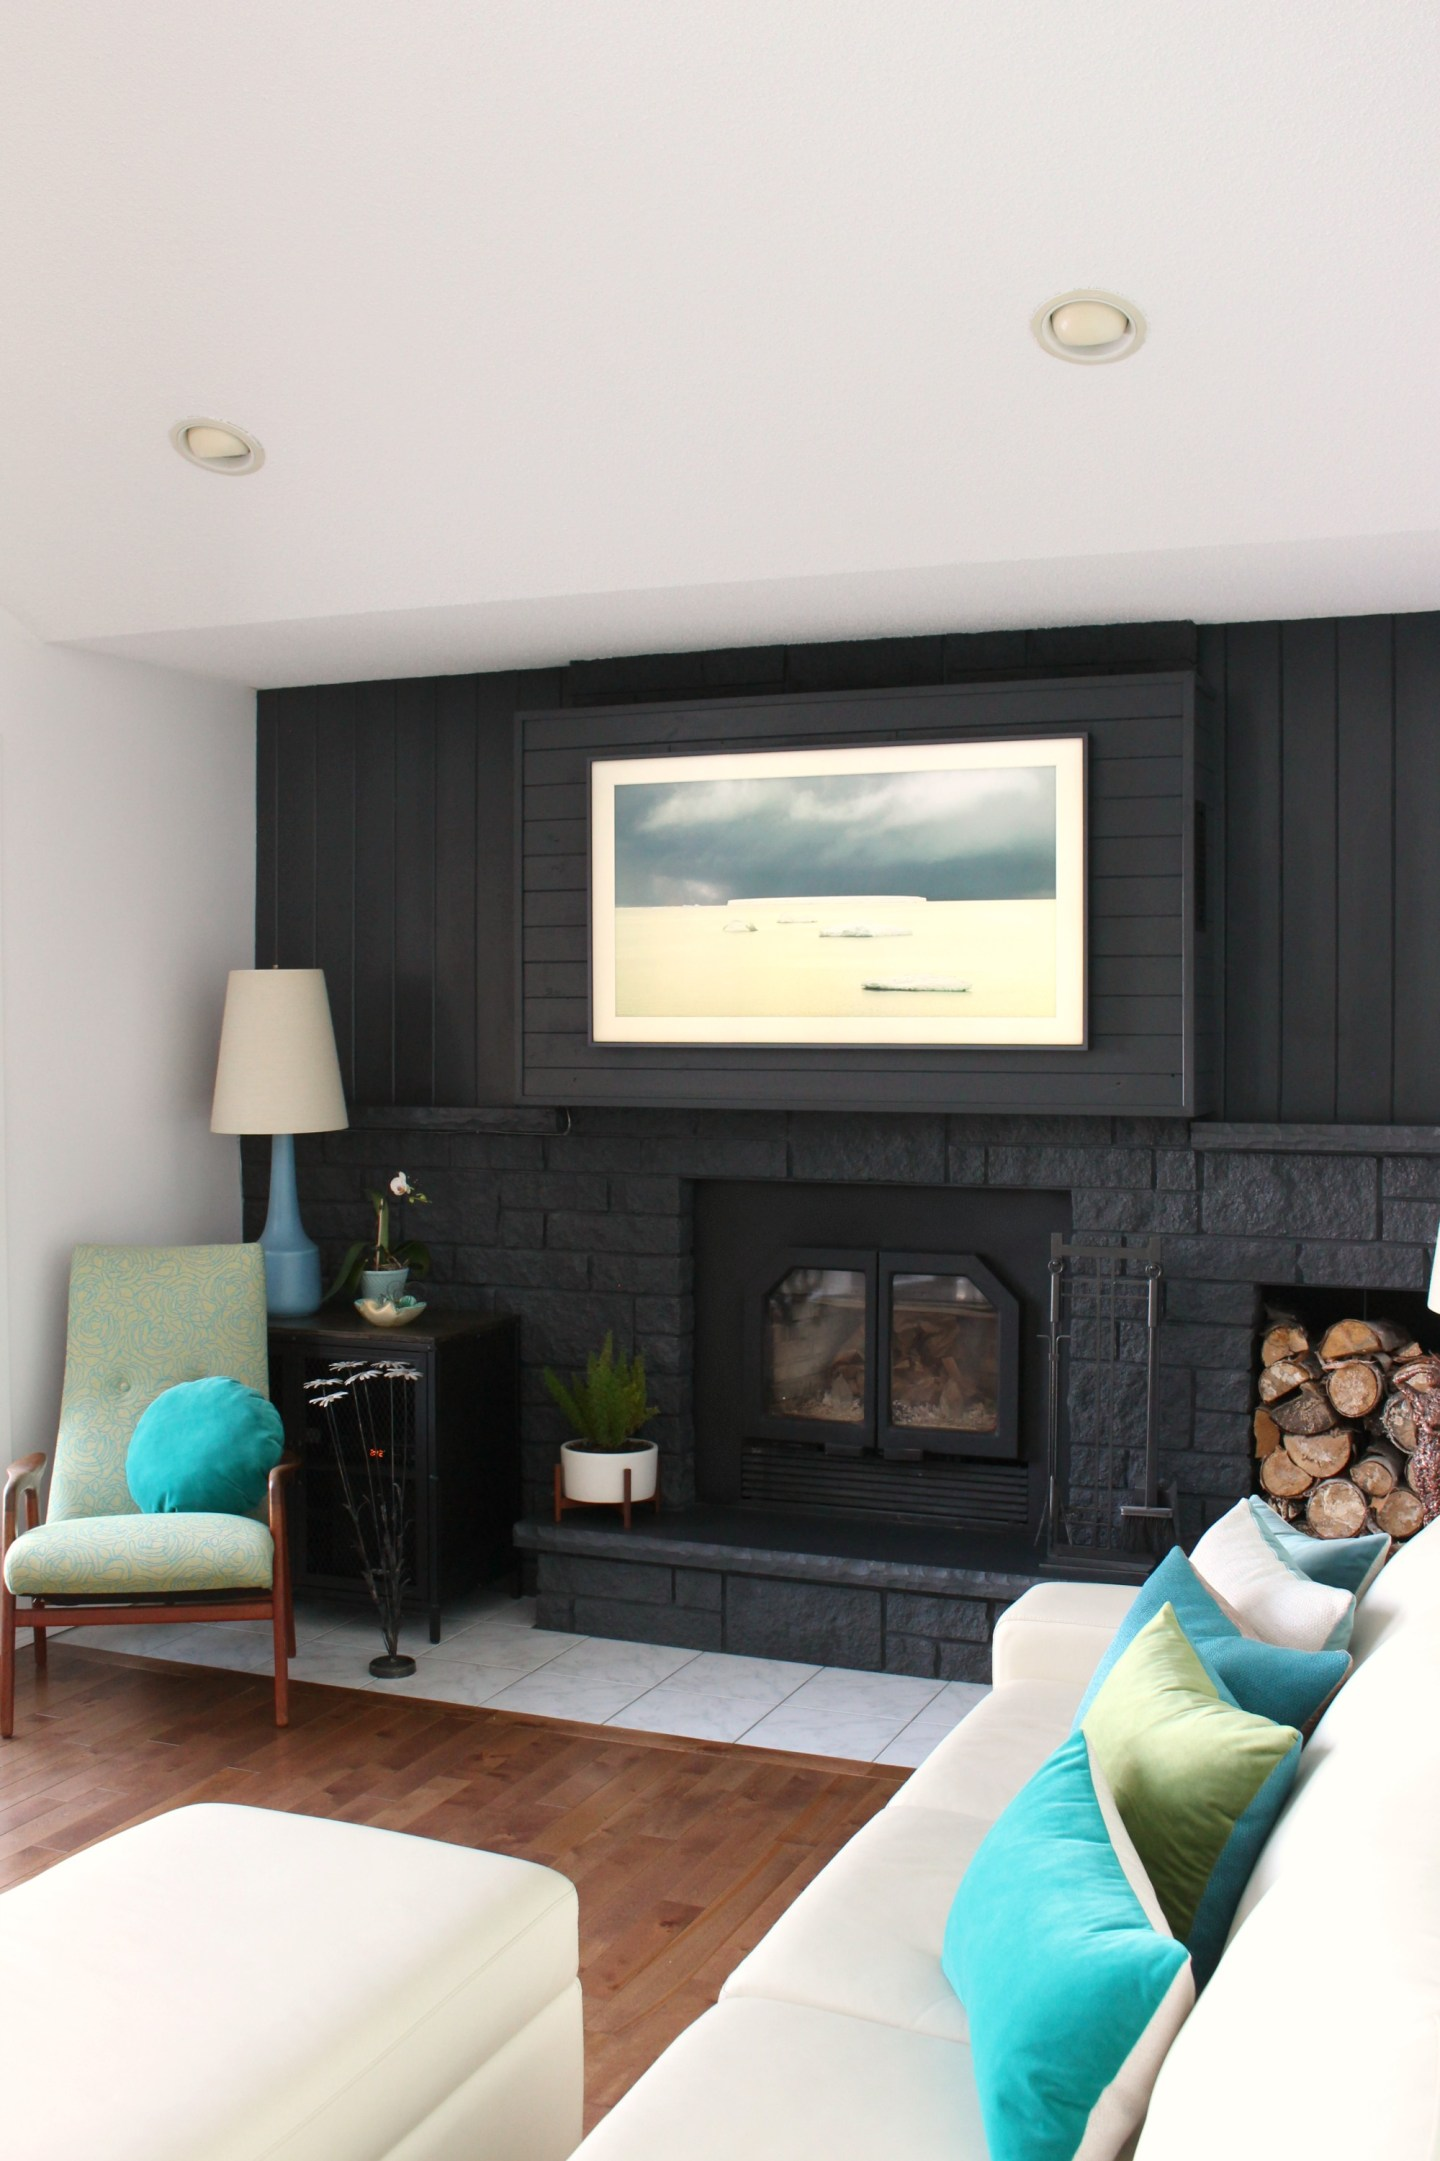 Samsung Frame TV Review | Unsponsored Review of the Frame TV with Pros and Cons | Dans le Lakehouse